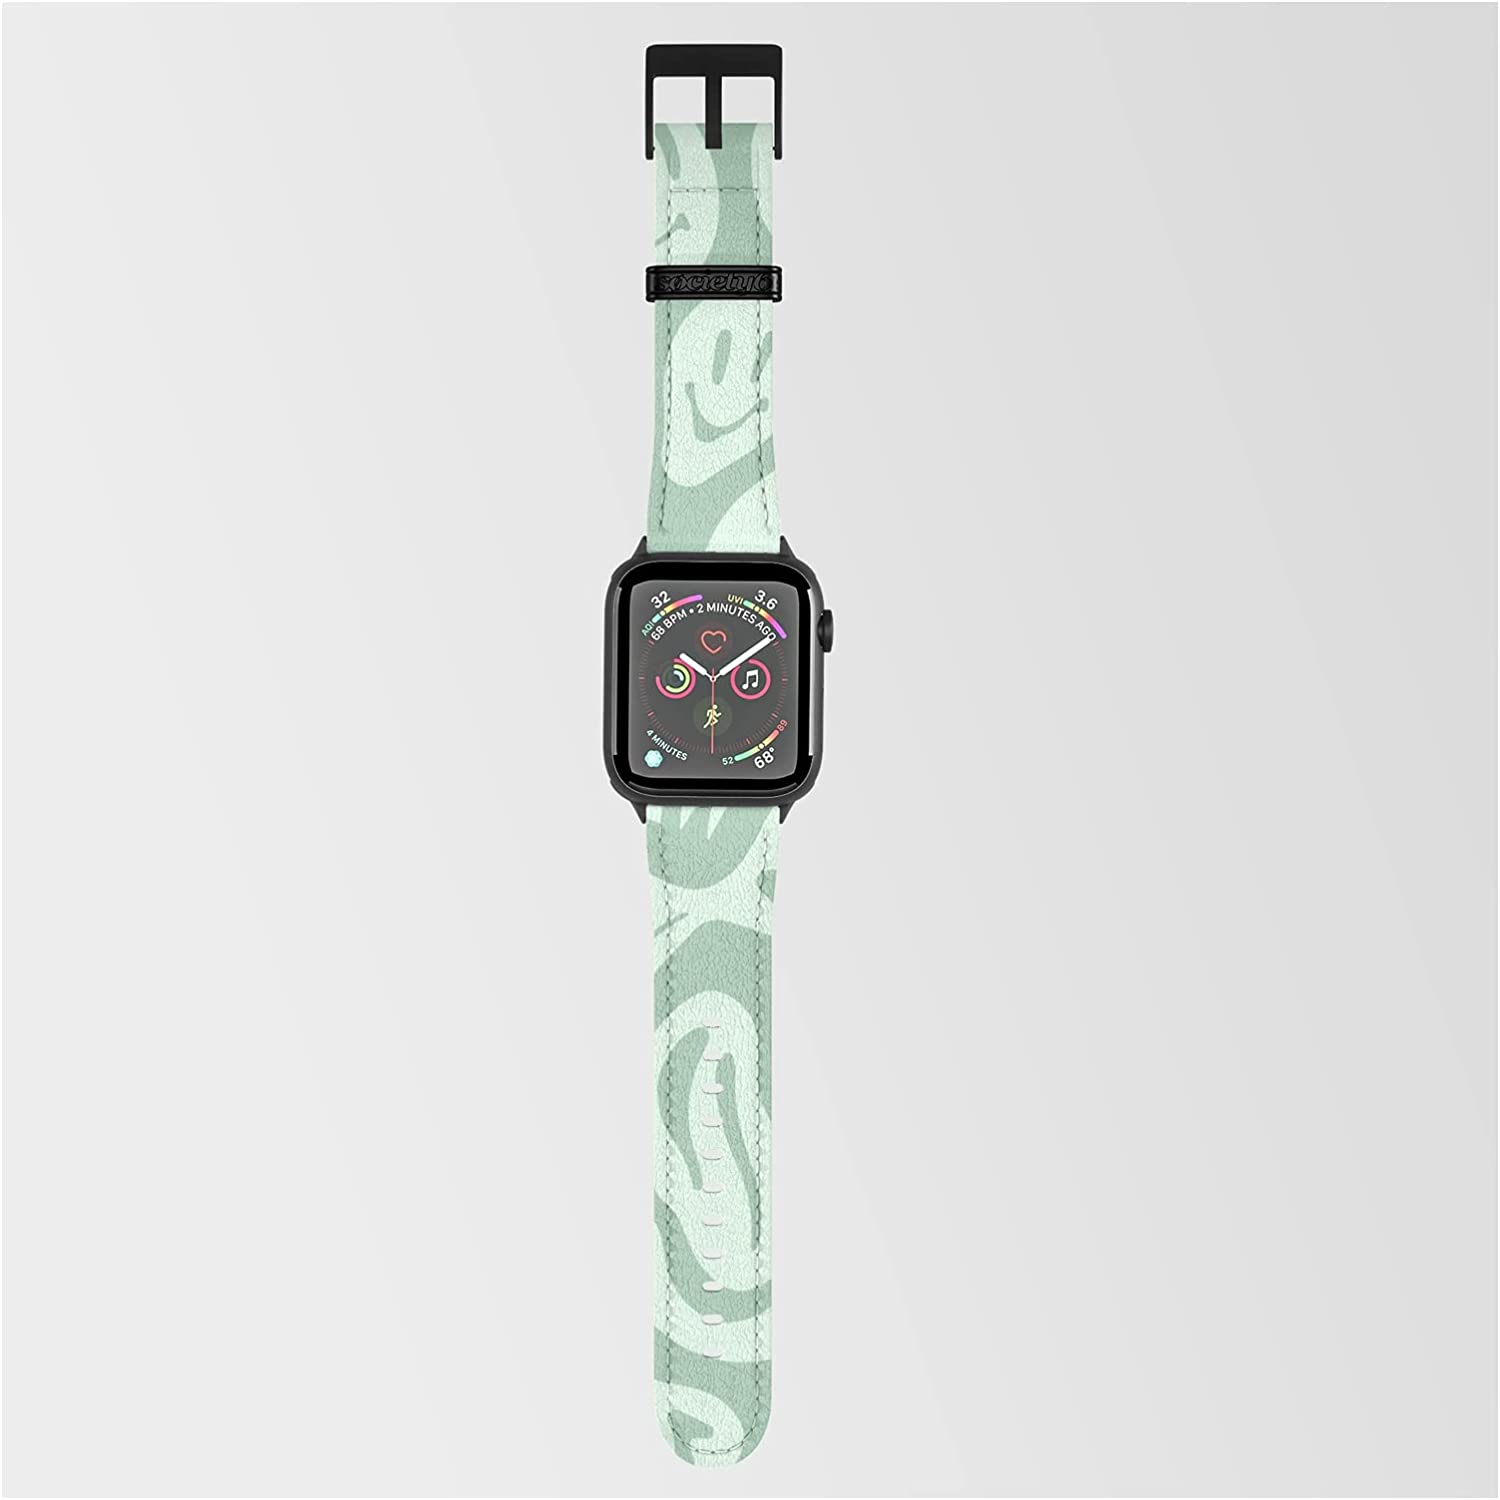 Free shipping / New Liquify Minty Fresh by More Smartwatch Preston on Credence Jamie Band